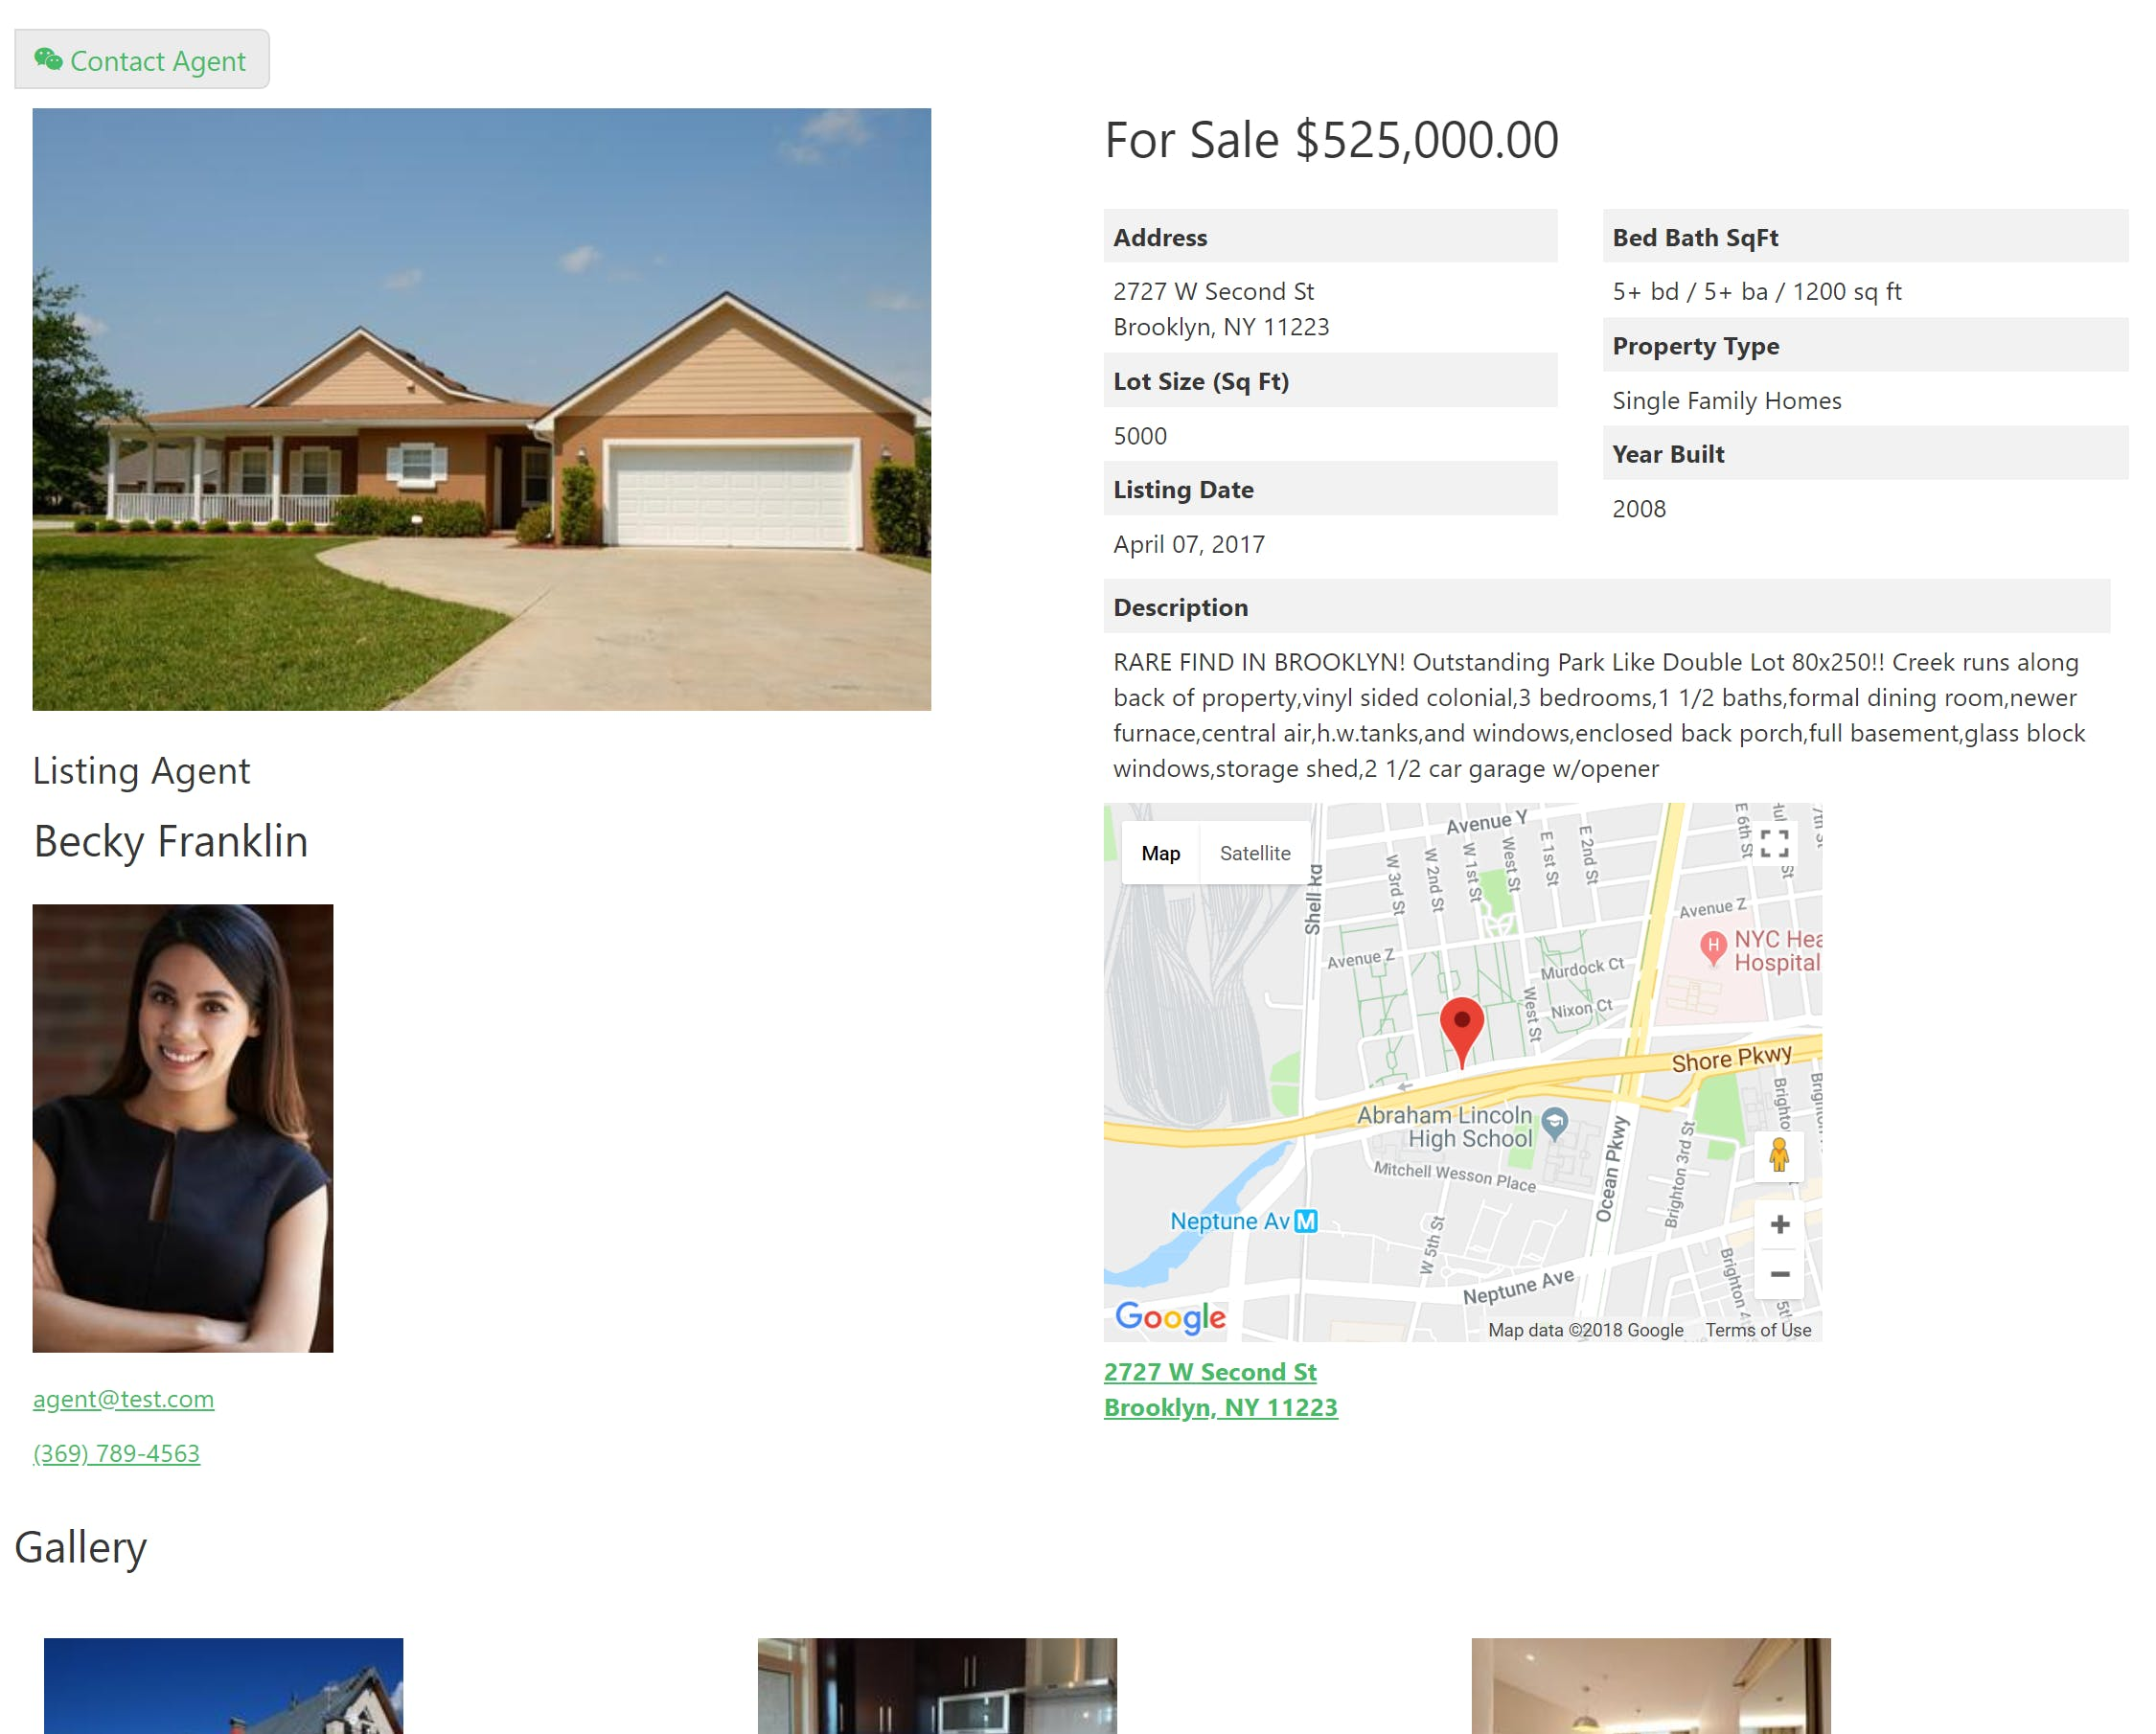 See all the details for a listing on this page, including the agent, a map displaying the location, and photos.